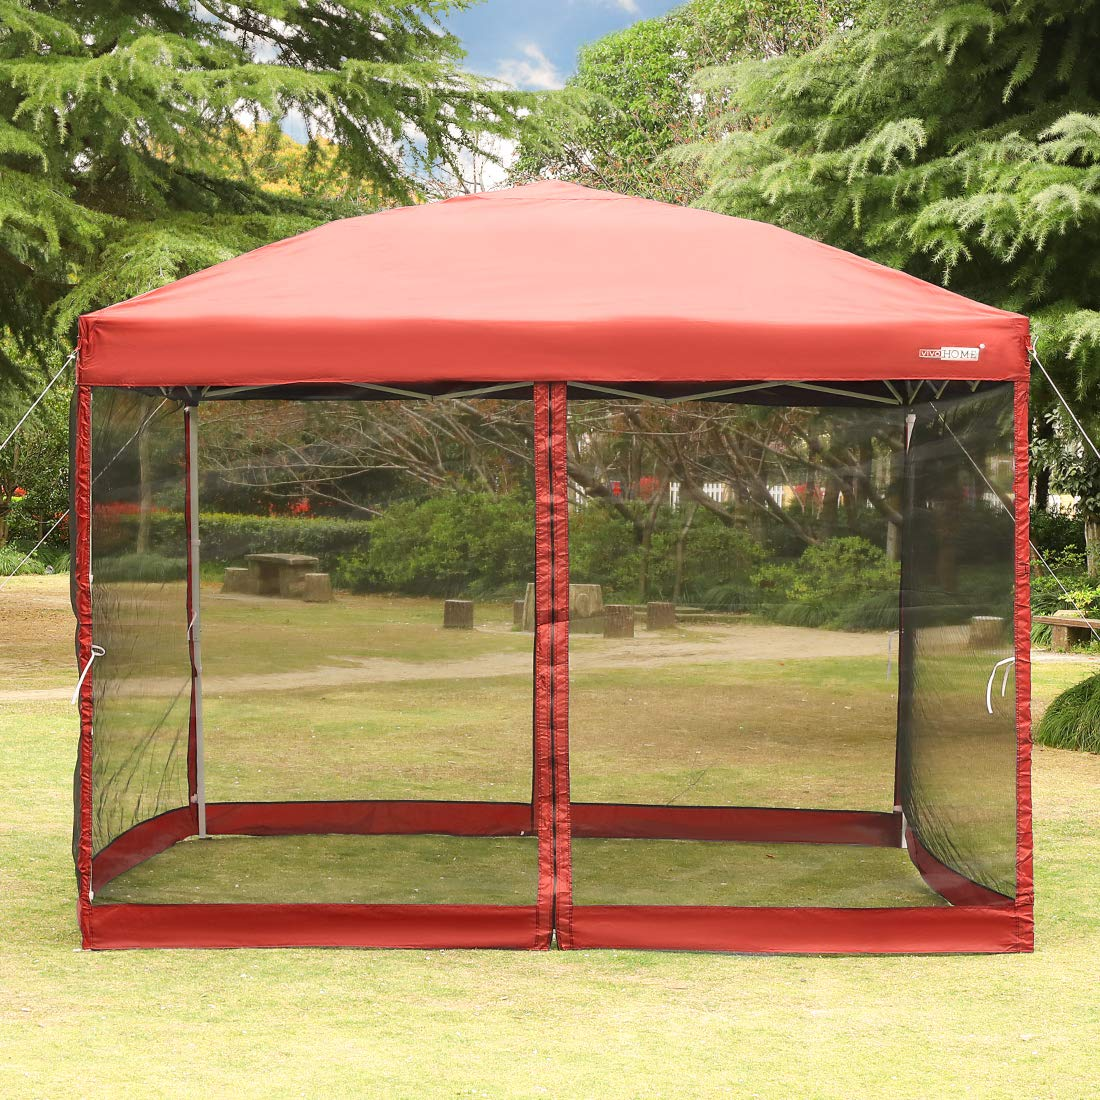 VIVOHOME 210D Oxford Outdoor Easy Pop Up Canopy Screen Party Tent with Mesh Side Walls Red 8 x 8 ft by VIVOHOME